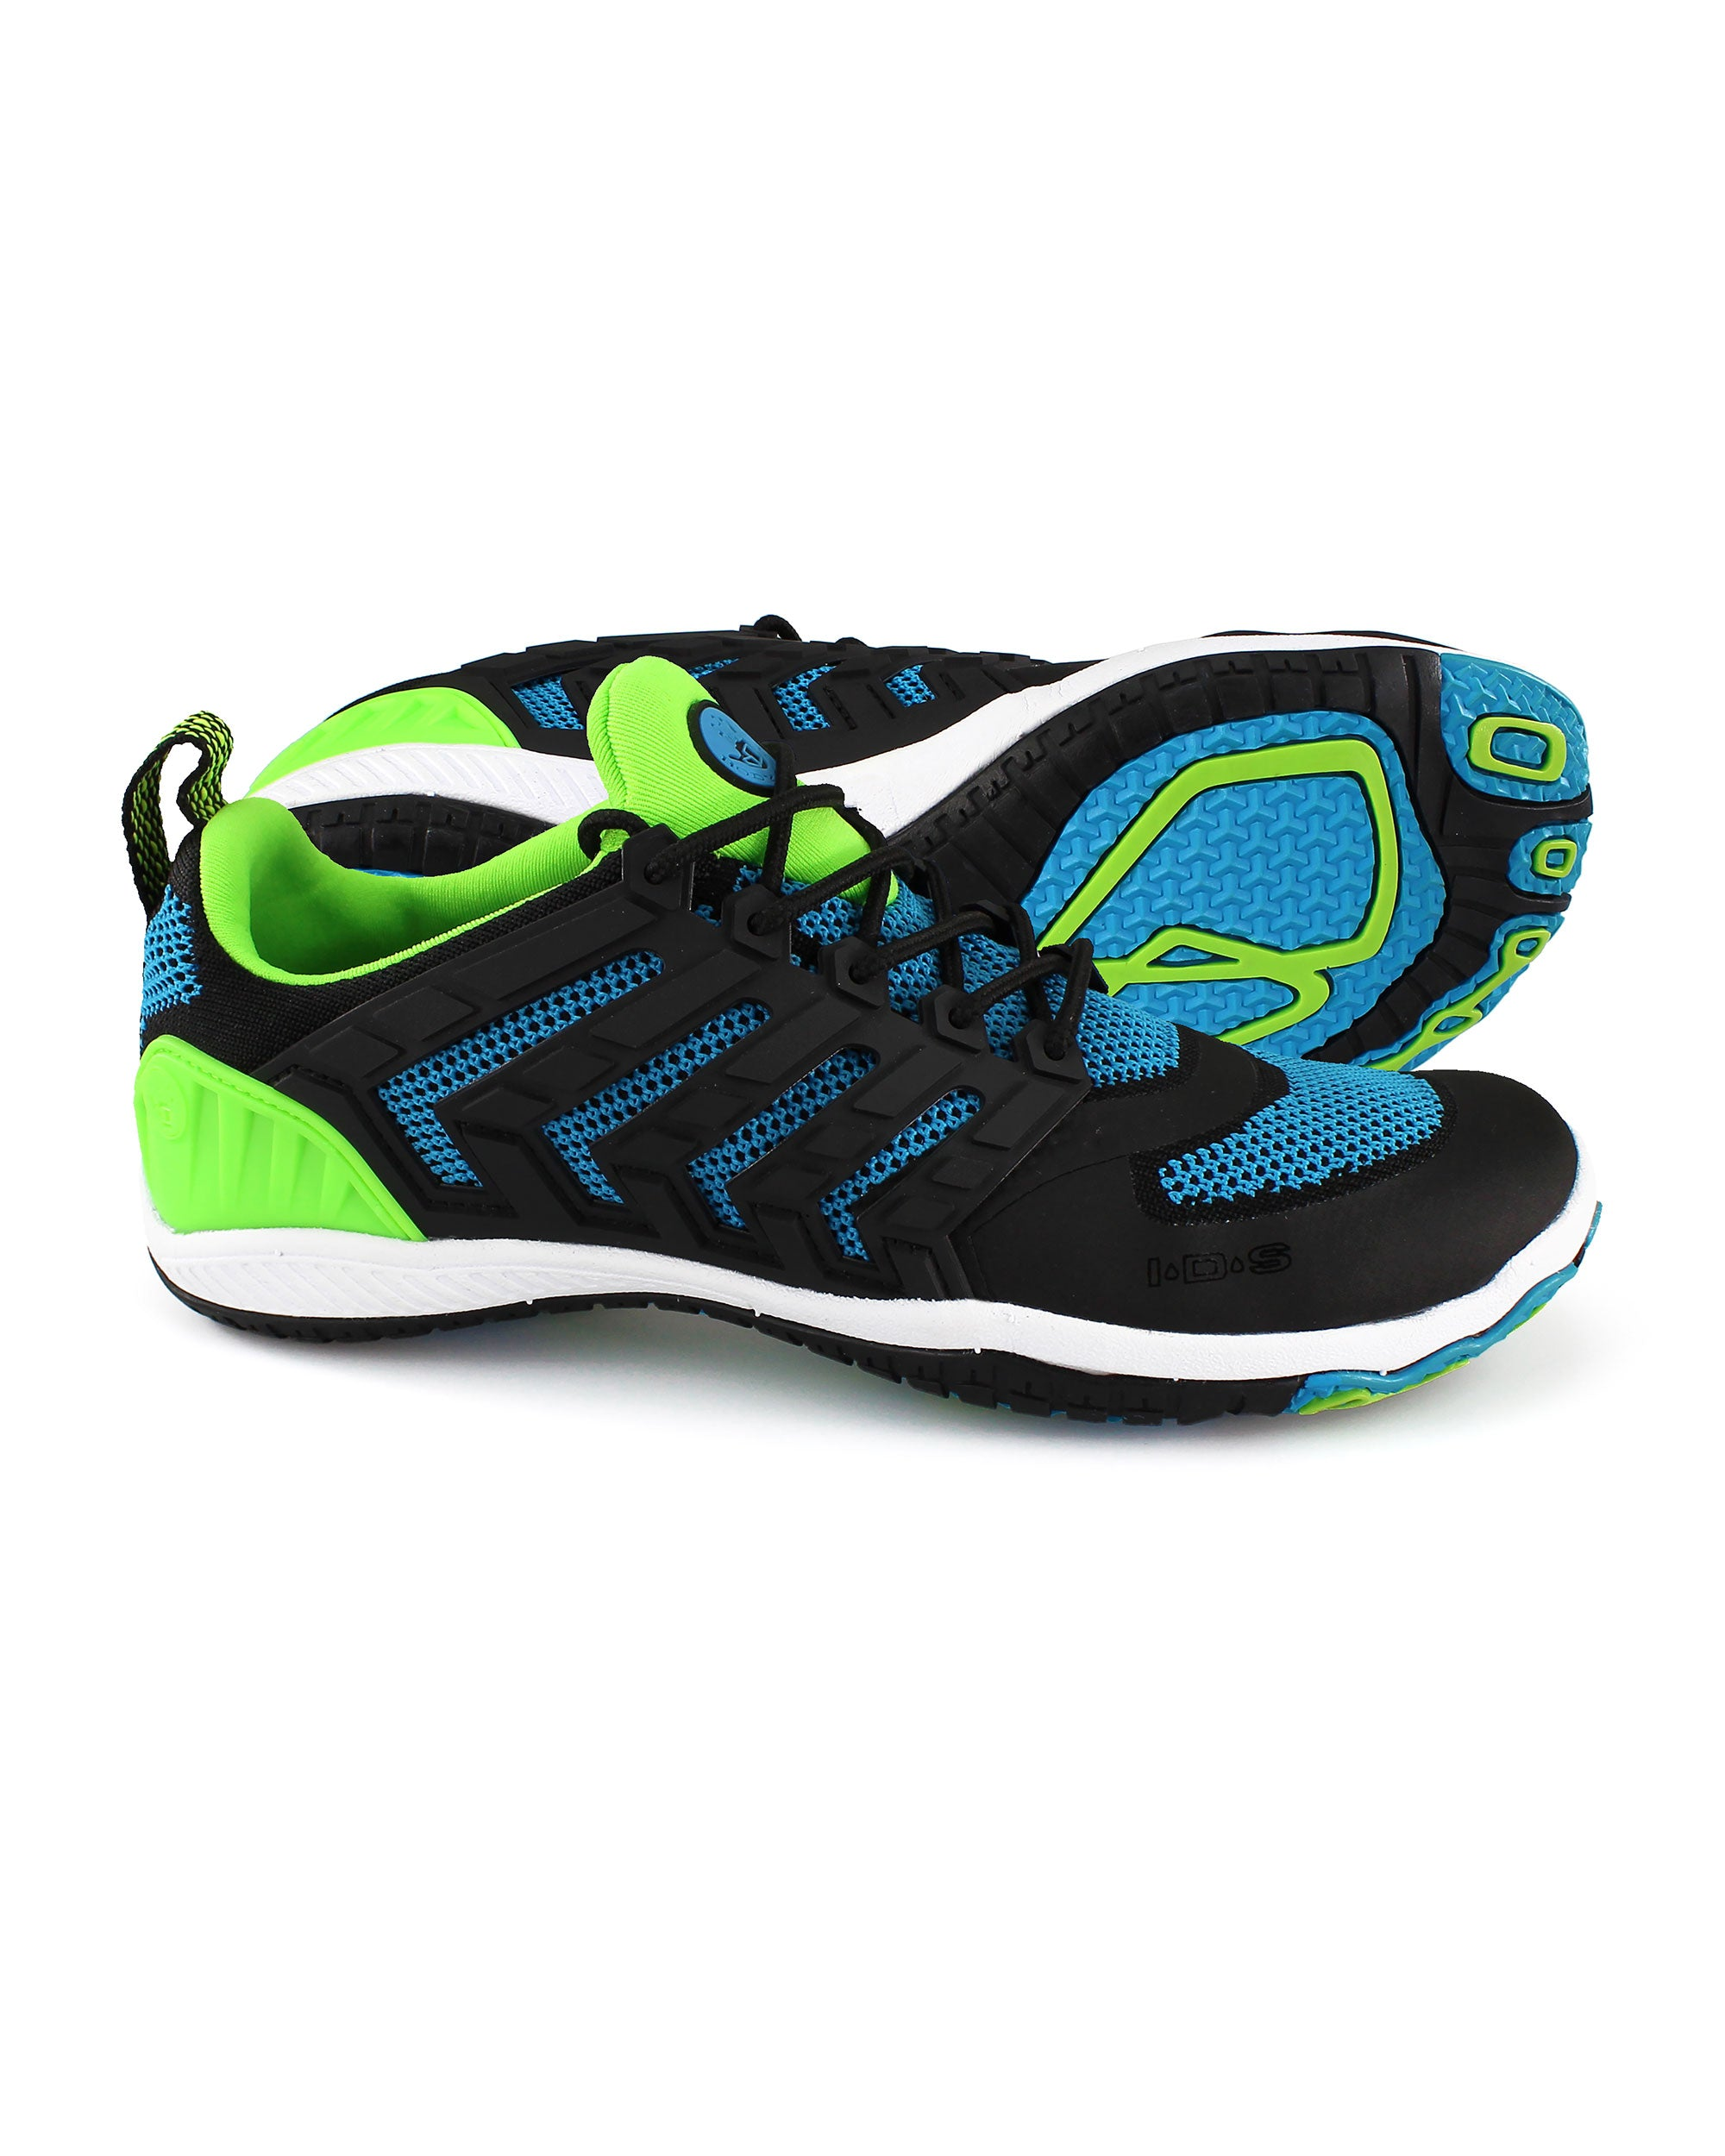 Women's Dynamo Ribcage Water Shoes - Neon Blue/Neon Green